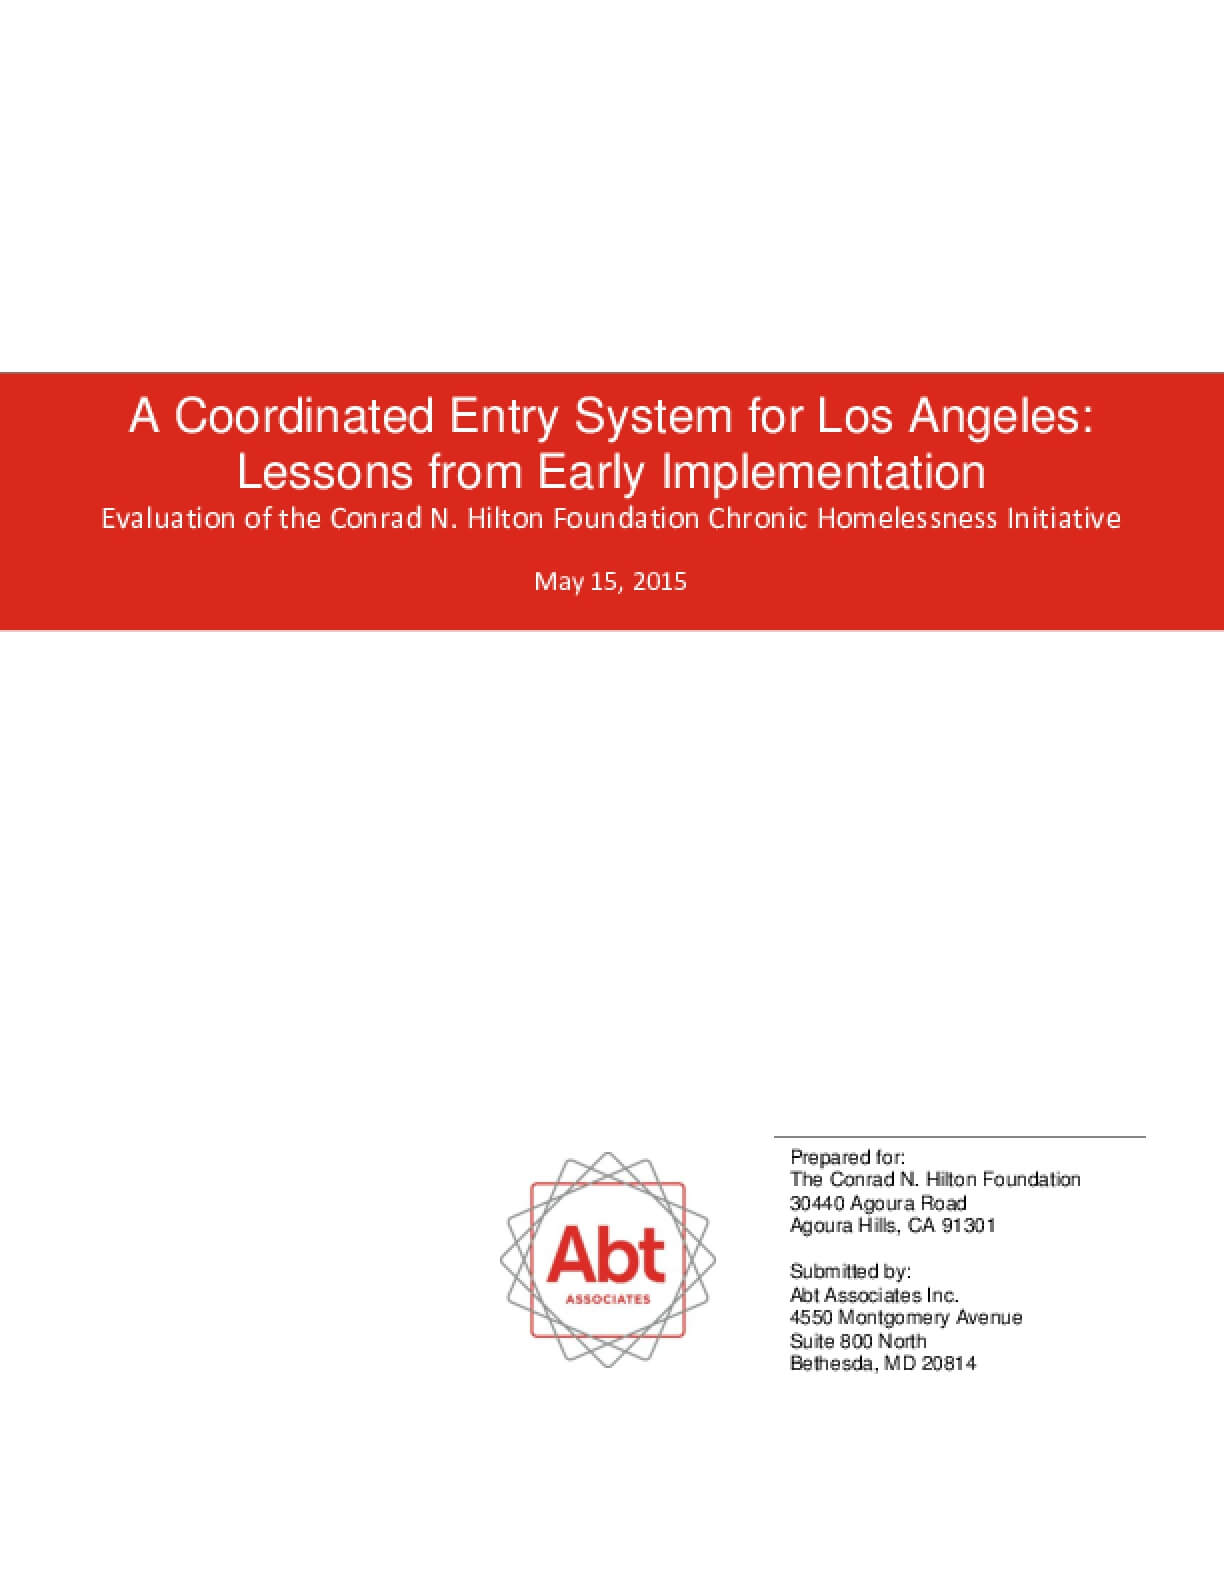 Coordinated Entry System for Los Angeles: Lessons from Early Implementation